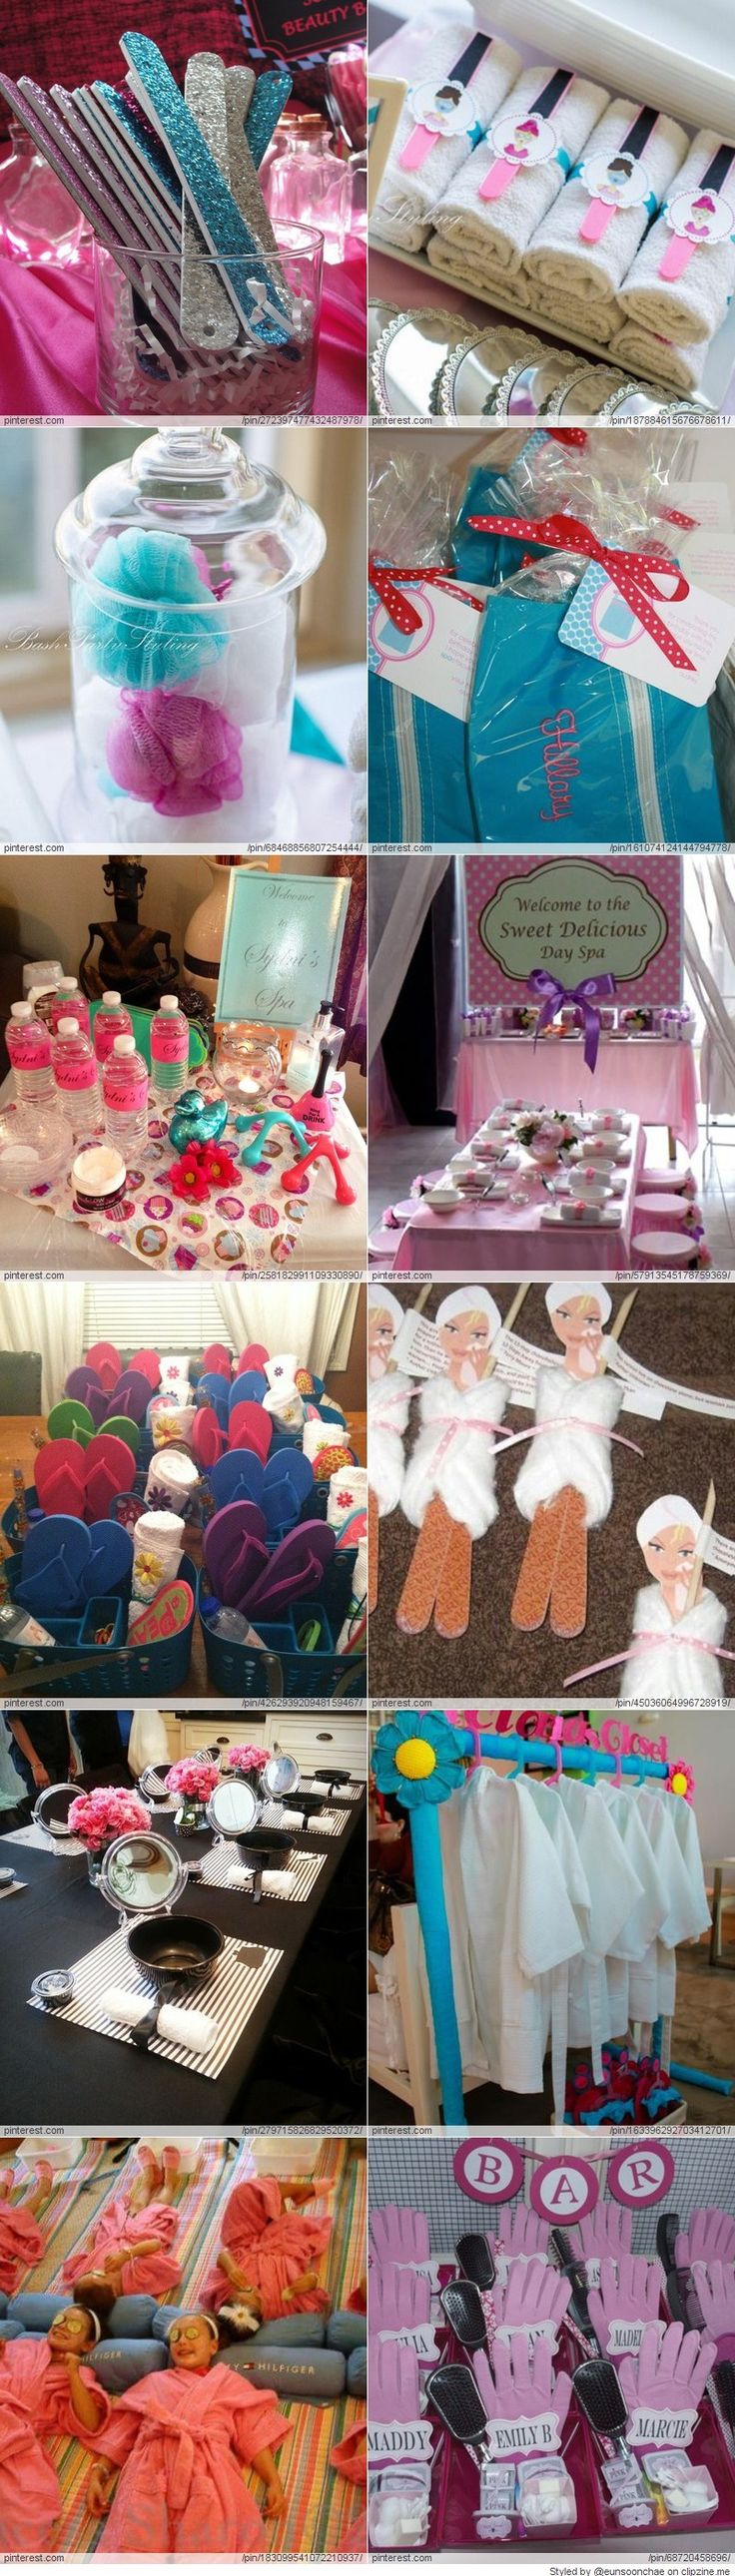 Teen Spa Party - Teen Party Ideas from Birthday Party Ideas